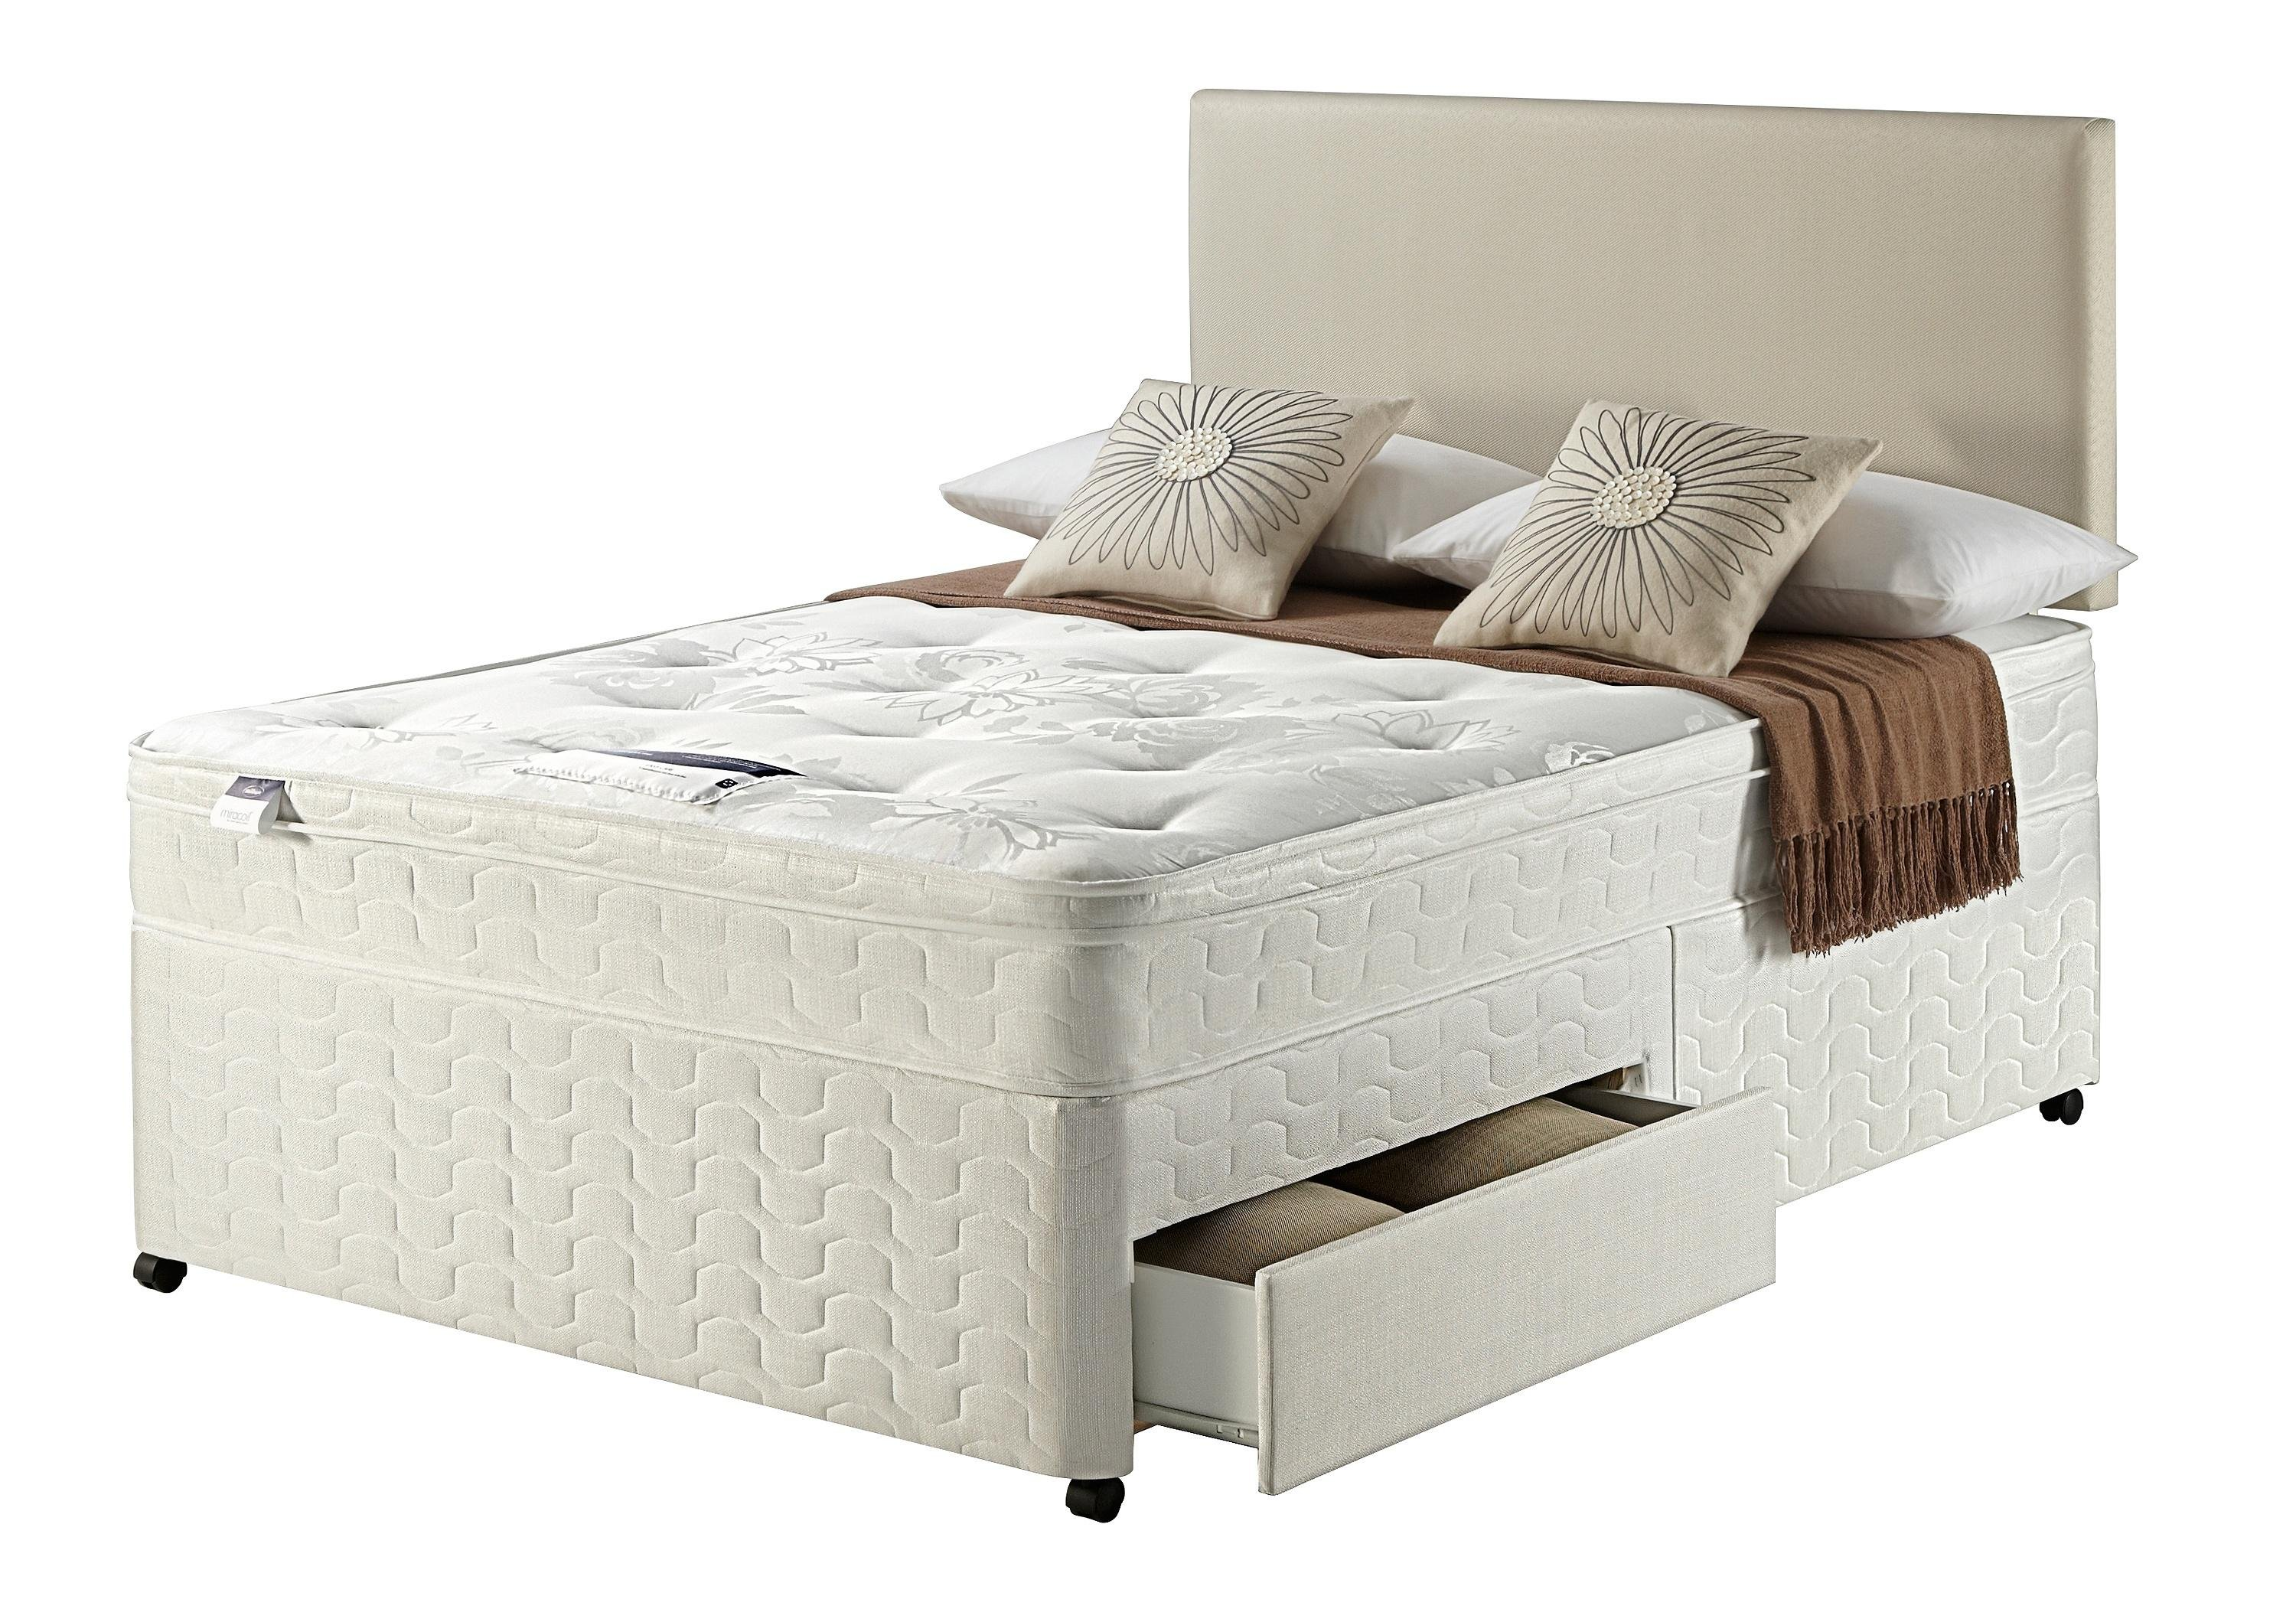 Silentnight miracoil travis ortho double 2 drw divan bed for Silentnight divan